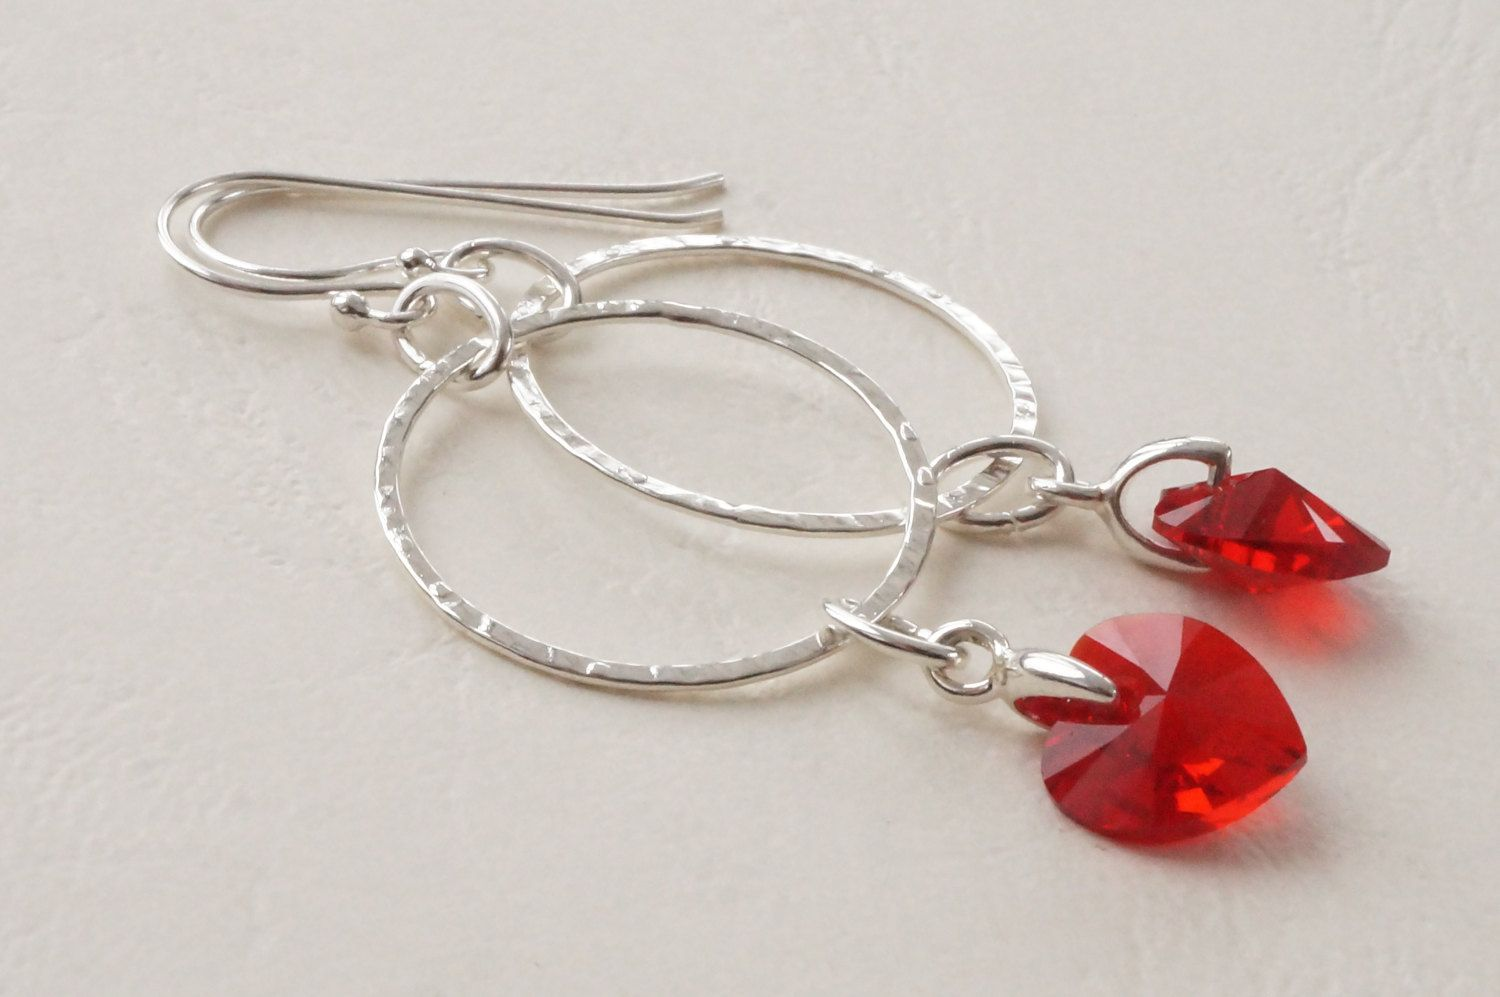 Swarovski Hearts On Hoops, Hoop Earrings, Red Heart Earrings, Hoop Charm  Earrings, Hoop Earrings With Light Siam Swarovski Hearts